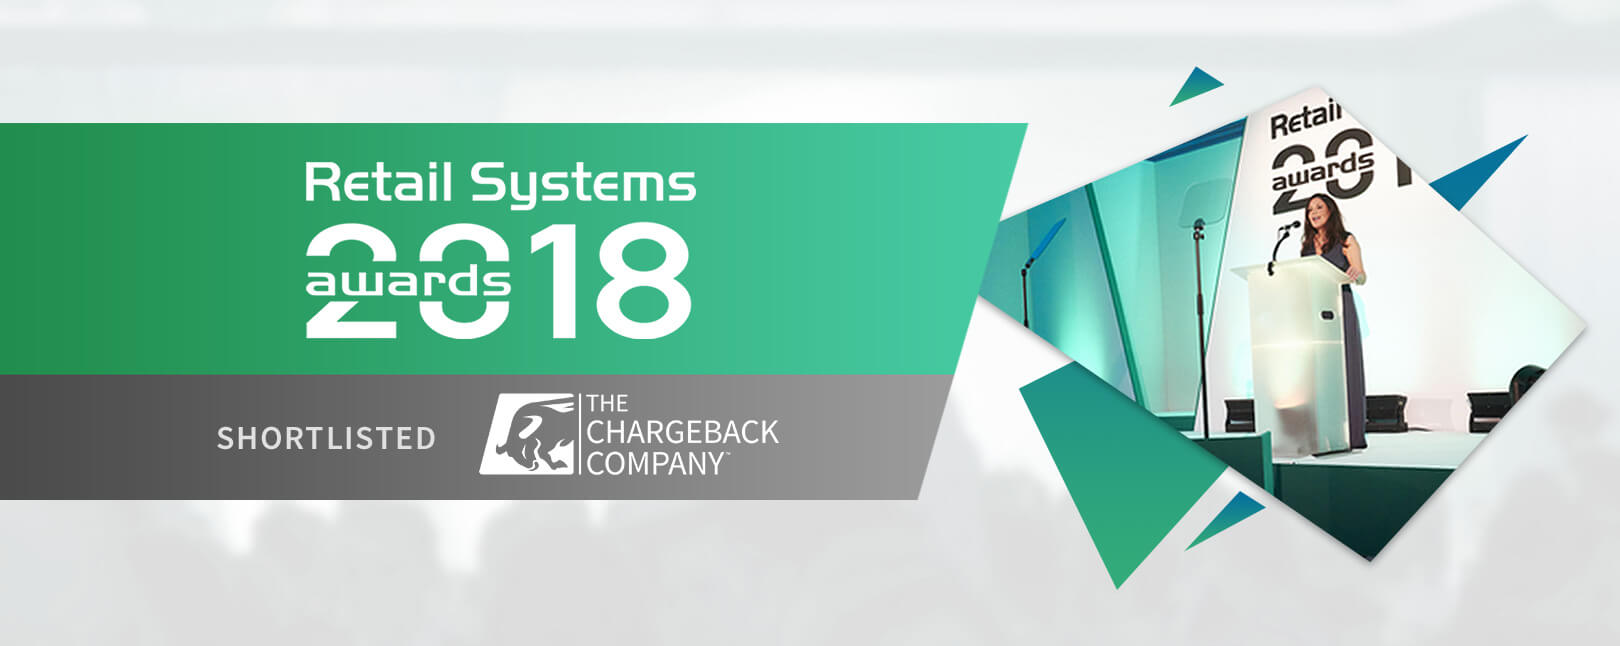 The Chargeback Company - Retail Systems Awards 2018